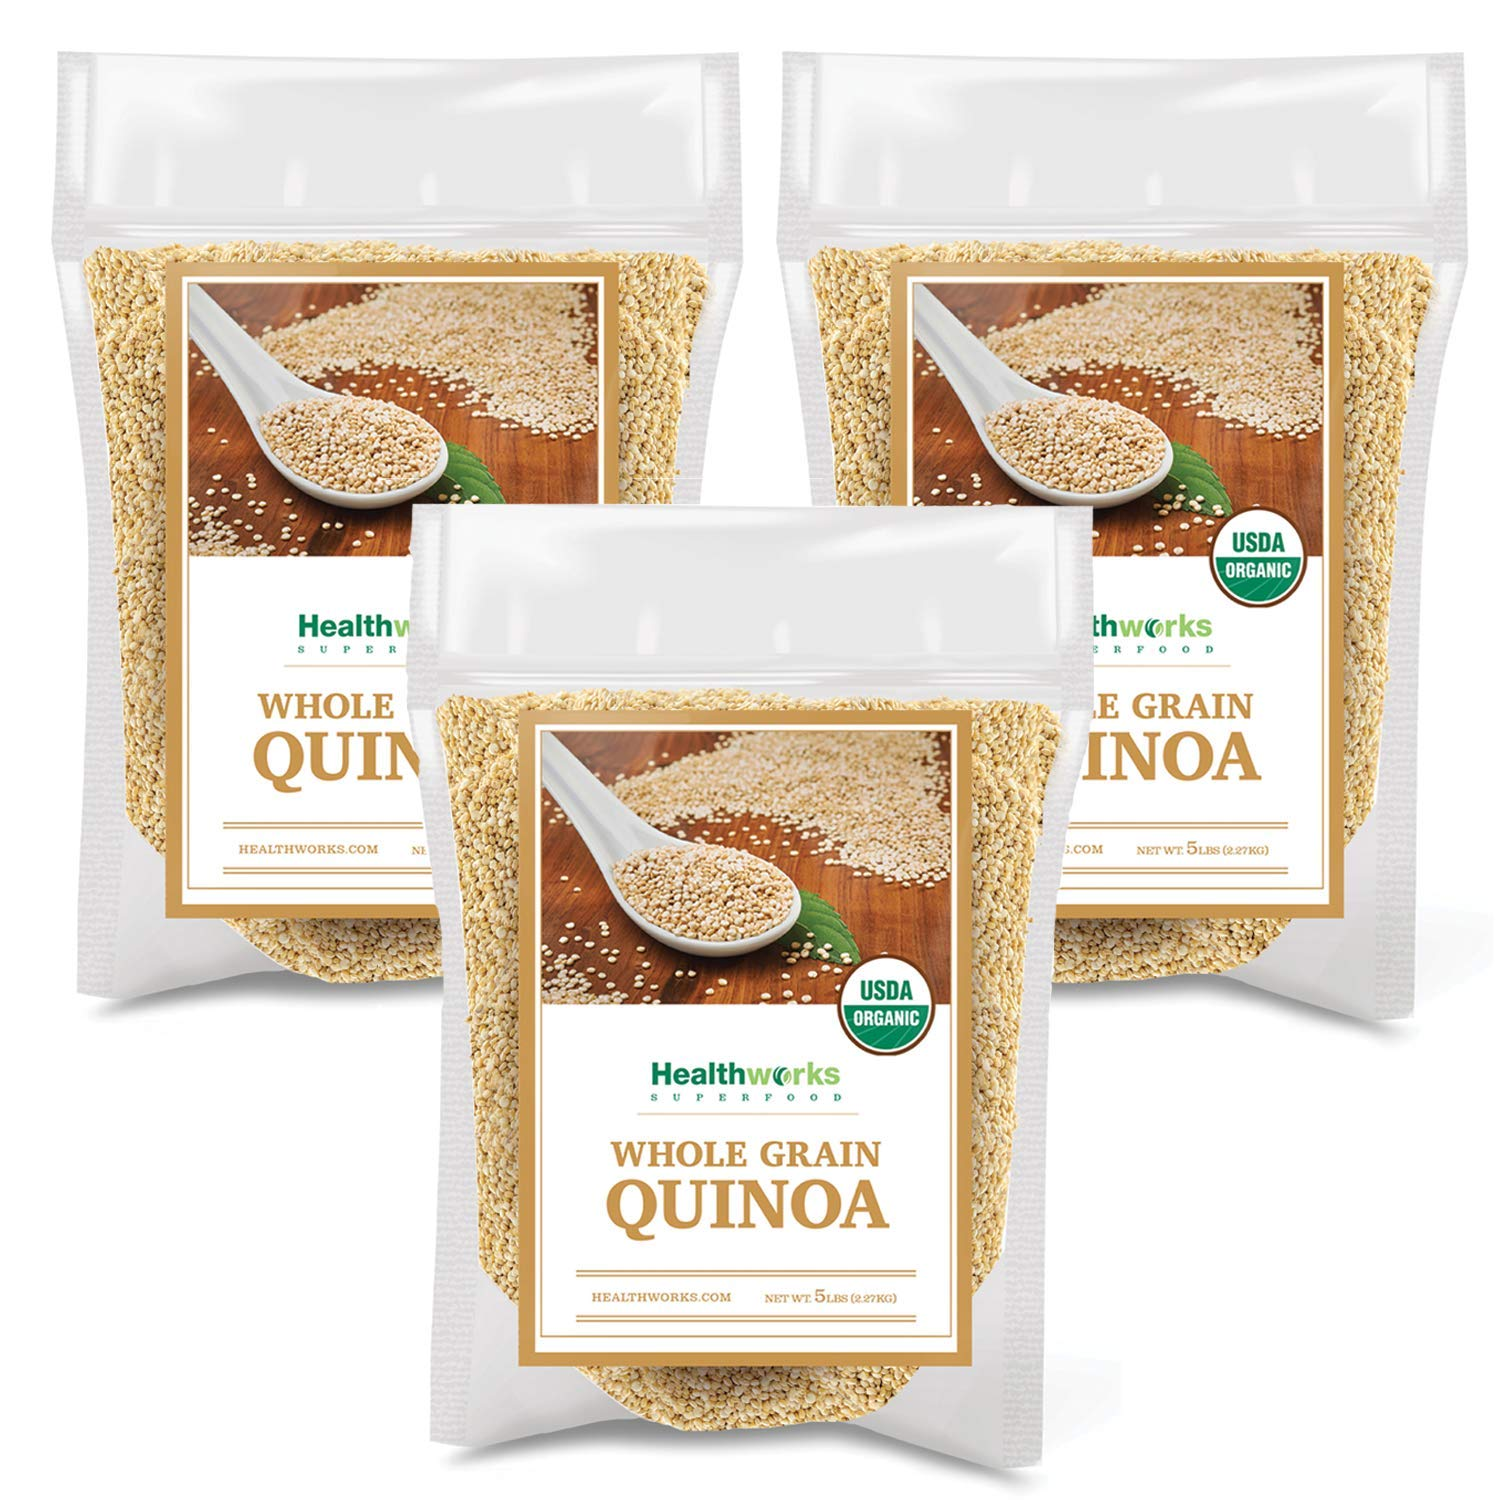 Healthworks Quinoa White Whole Grain Raw Organic (240 Ounces / 15 Pounds) (3 x 5 Pound Bags) | Protein, Fiber & Iron | Peruvian Origin | Rice & Pasta Substitute by Healthworks